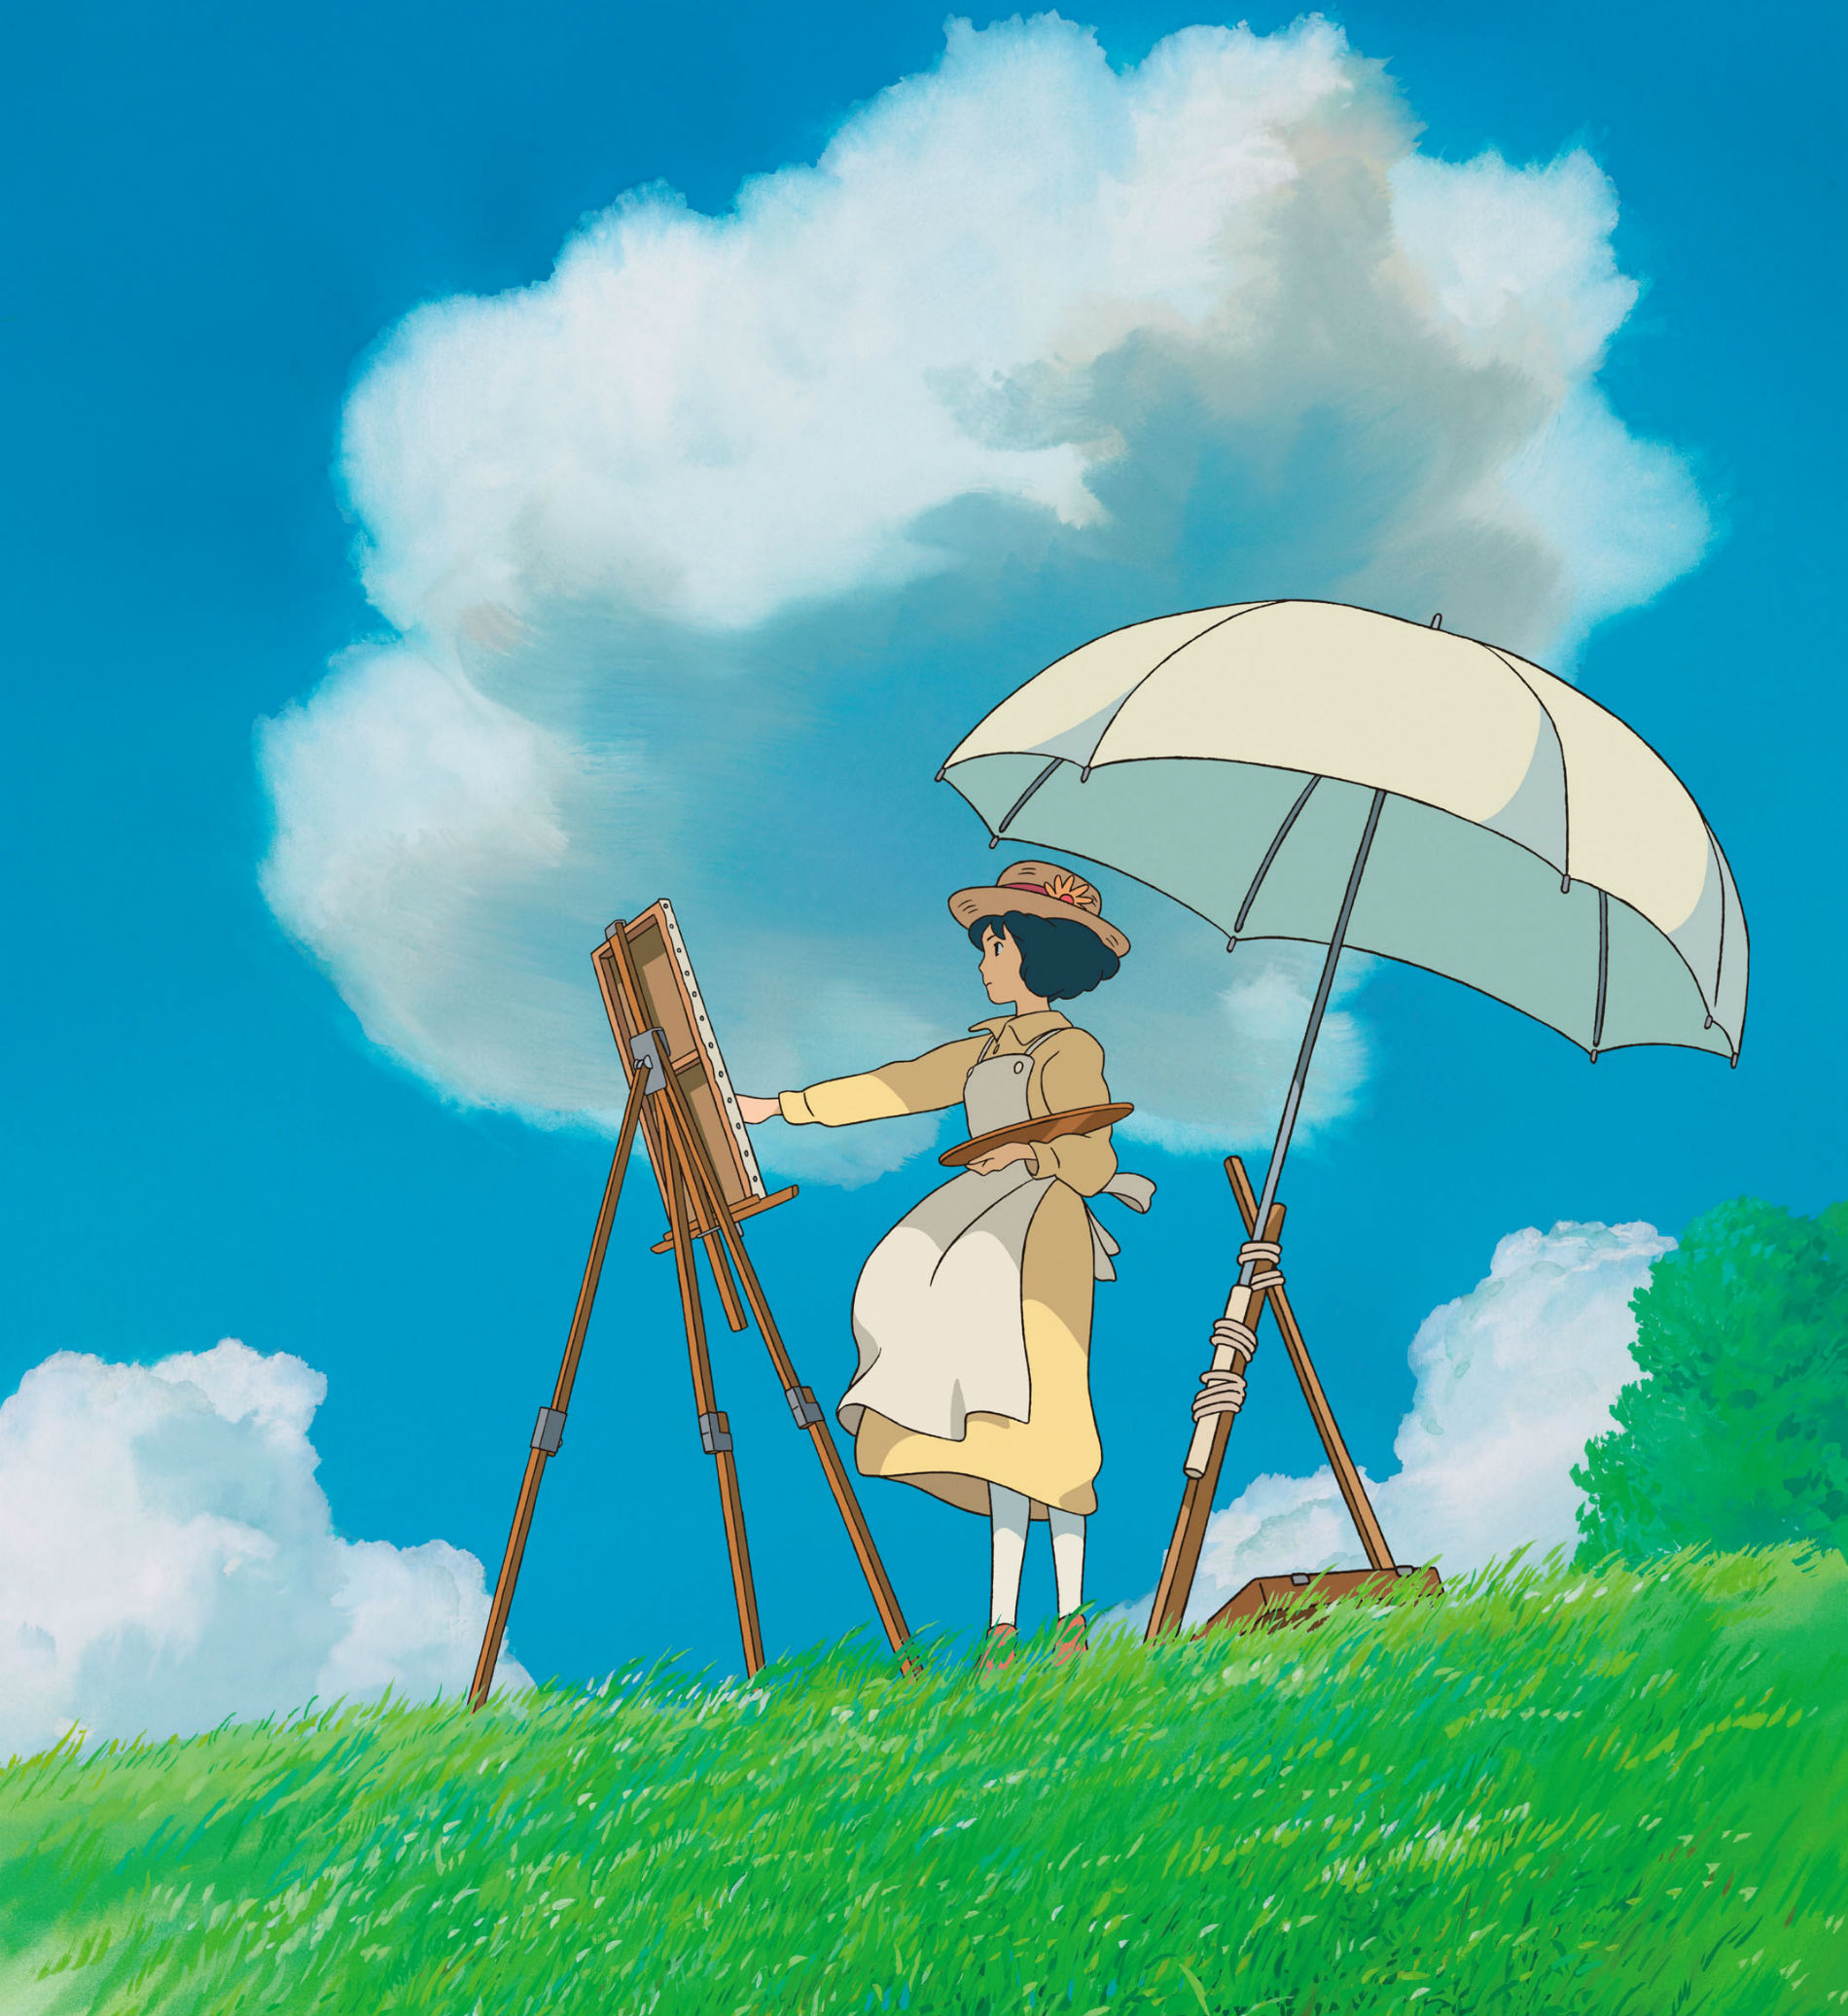 japanese cinema the wind rises animation studio ghibli